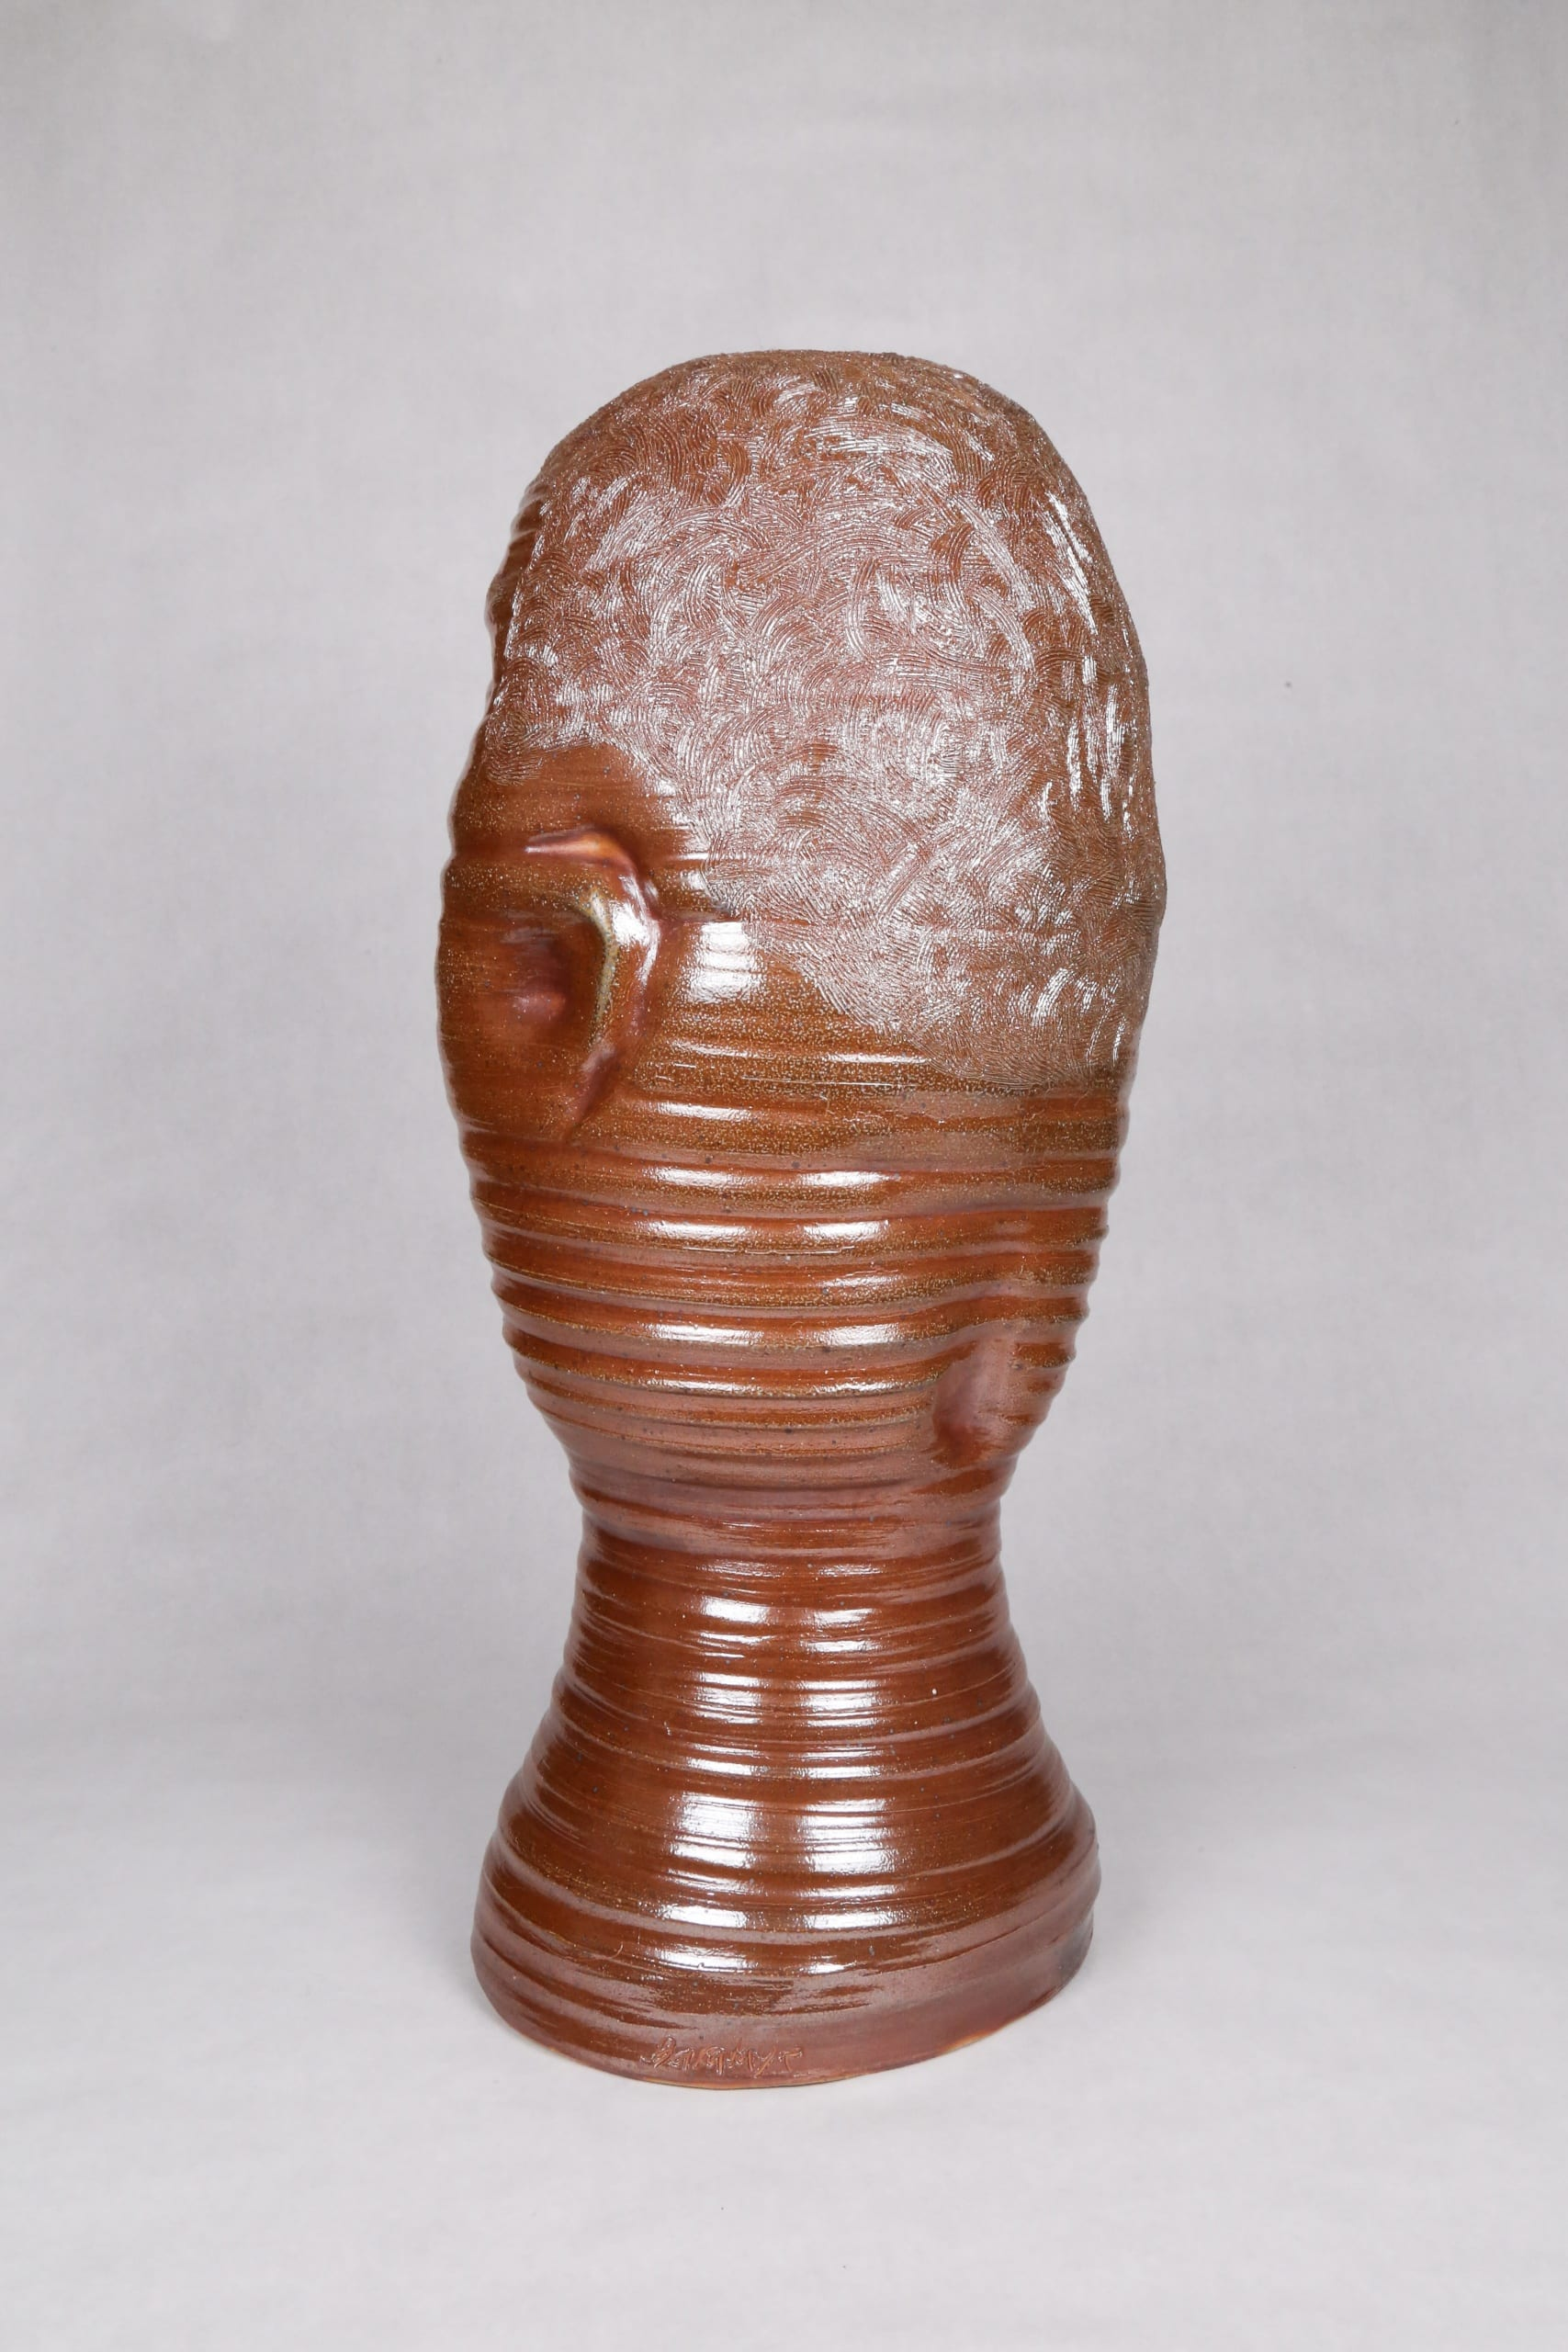 Color photograph with a back view of an abstract ceramic portrait head with distinctive ridges wrapping around the circumfrance of the head. The object is monochromatic (warm brown) with a light, luminescent glaze applied to its surface. It appears as though it was made on a spinning potter's wheel.